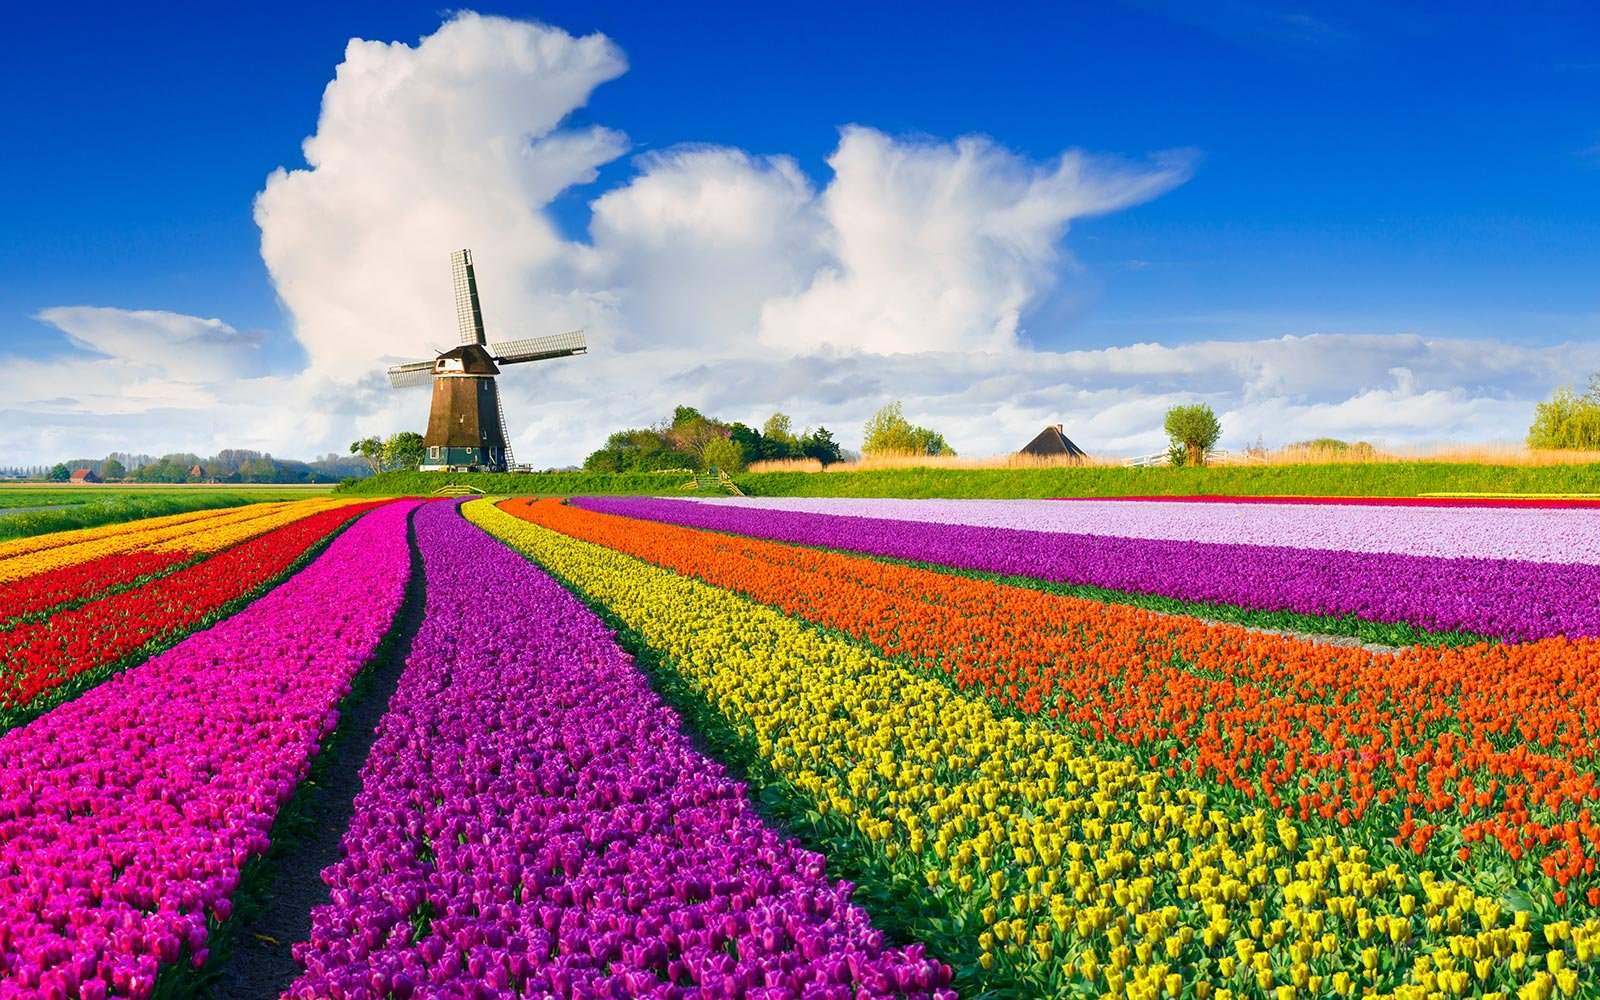 The Netherlands is famous for their tulips, but actually tulips originally didn't grow there. They were imported from the Ottoman.